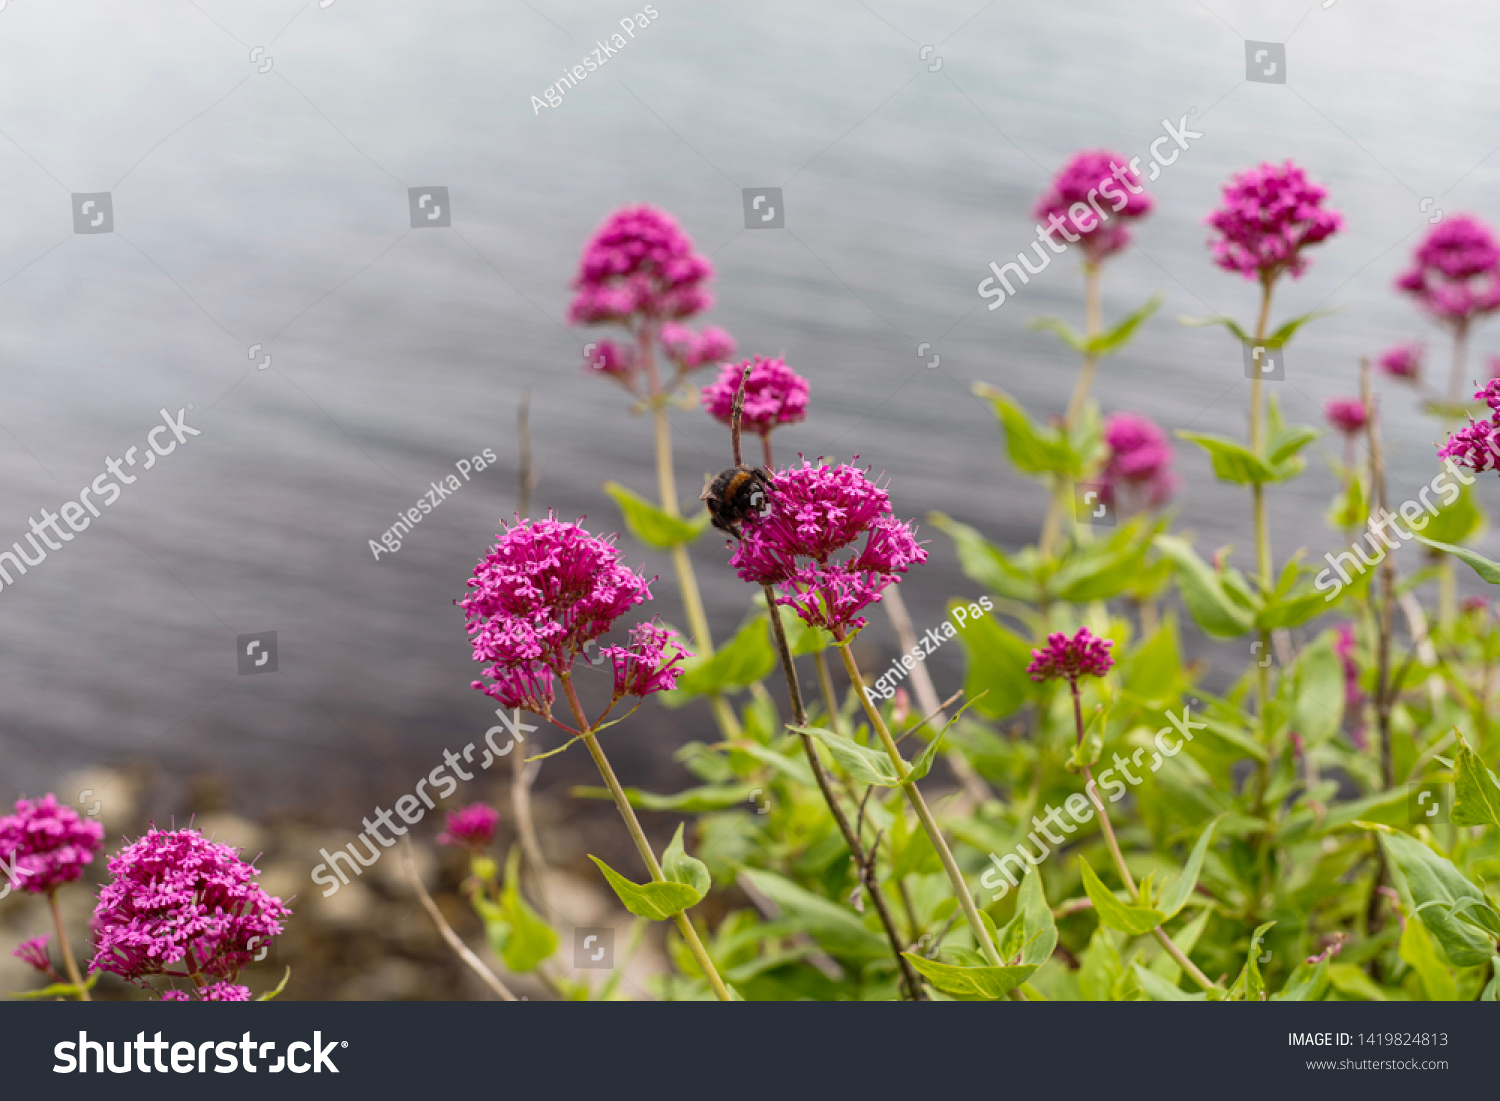 stock-photo-bumblebee-on-flower-of-centr